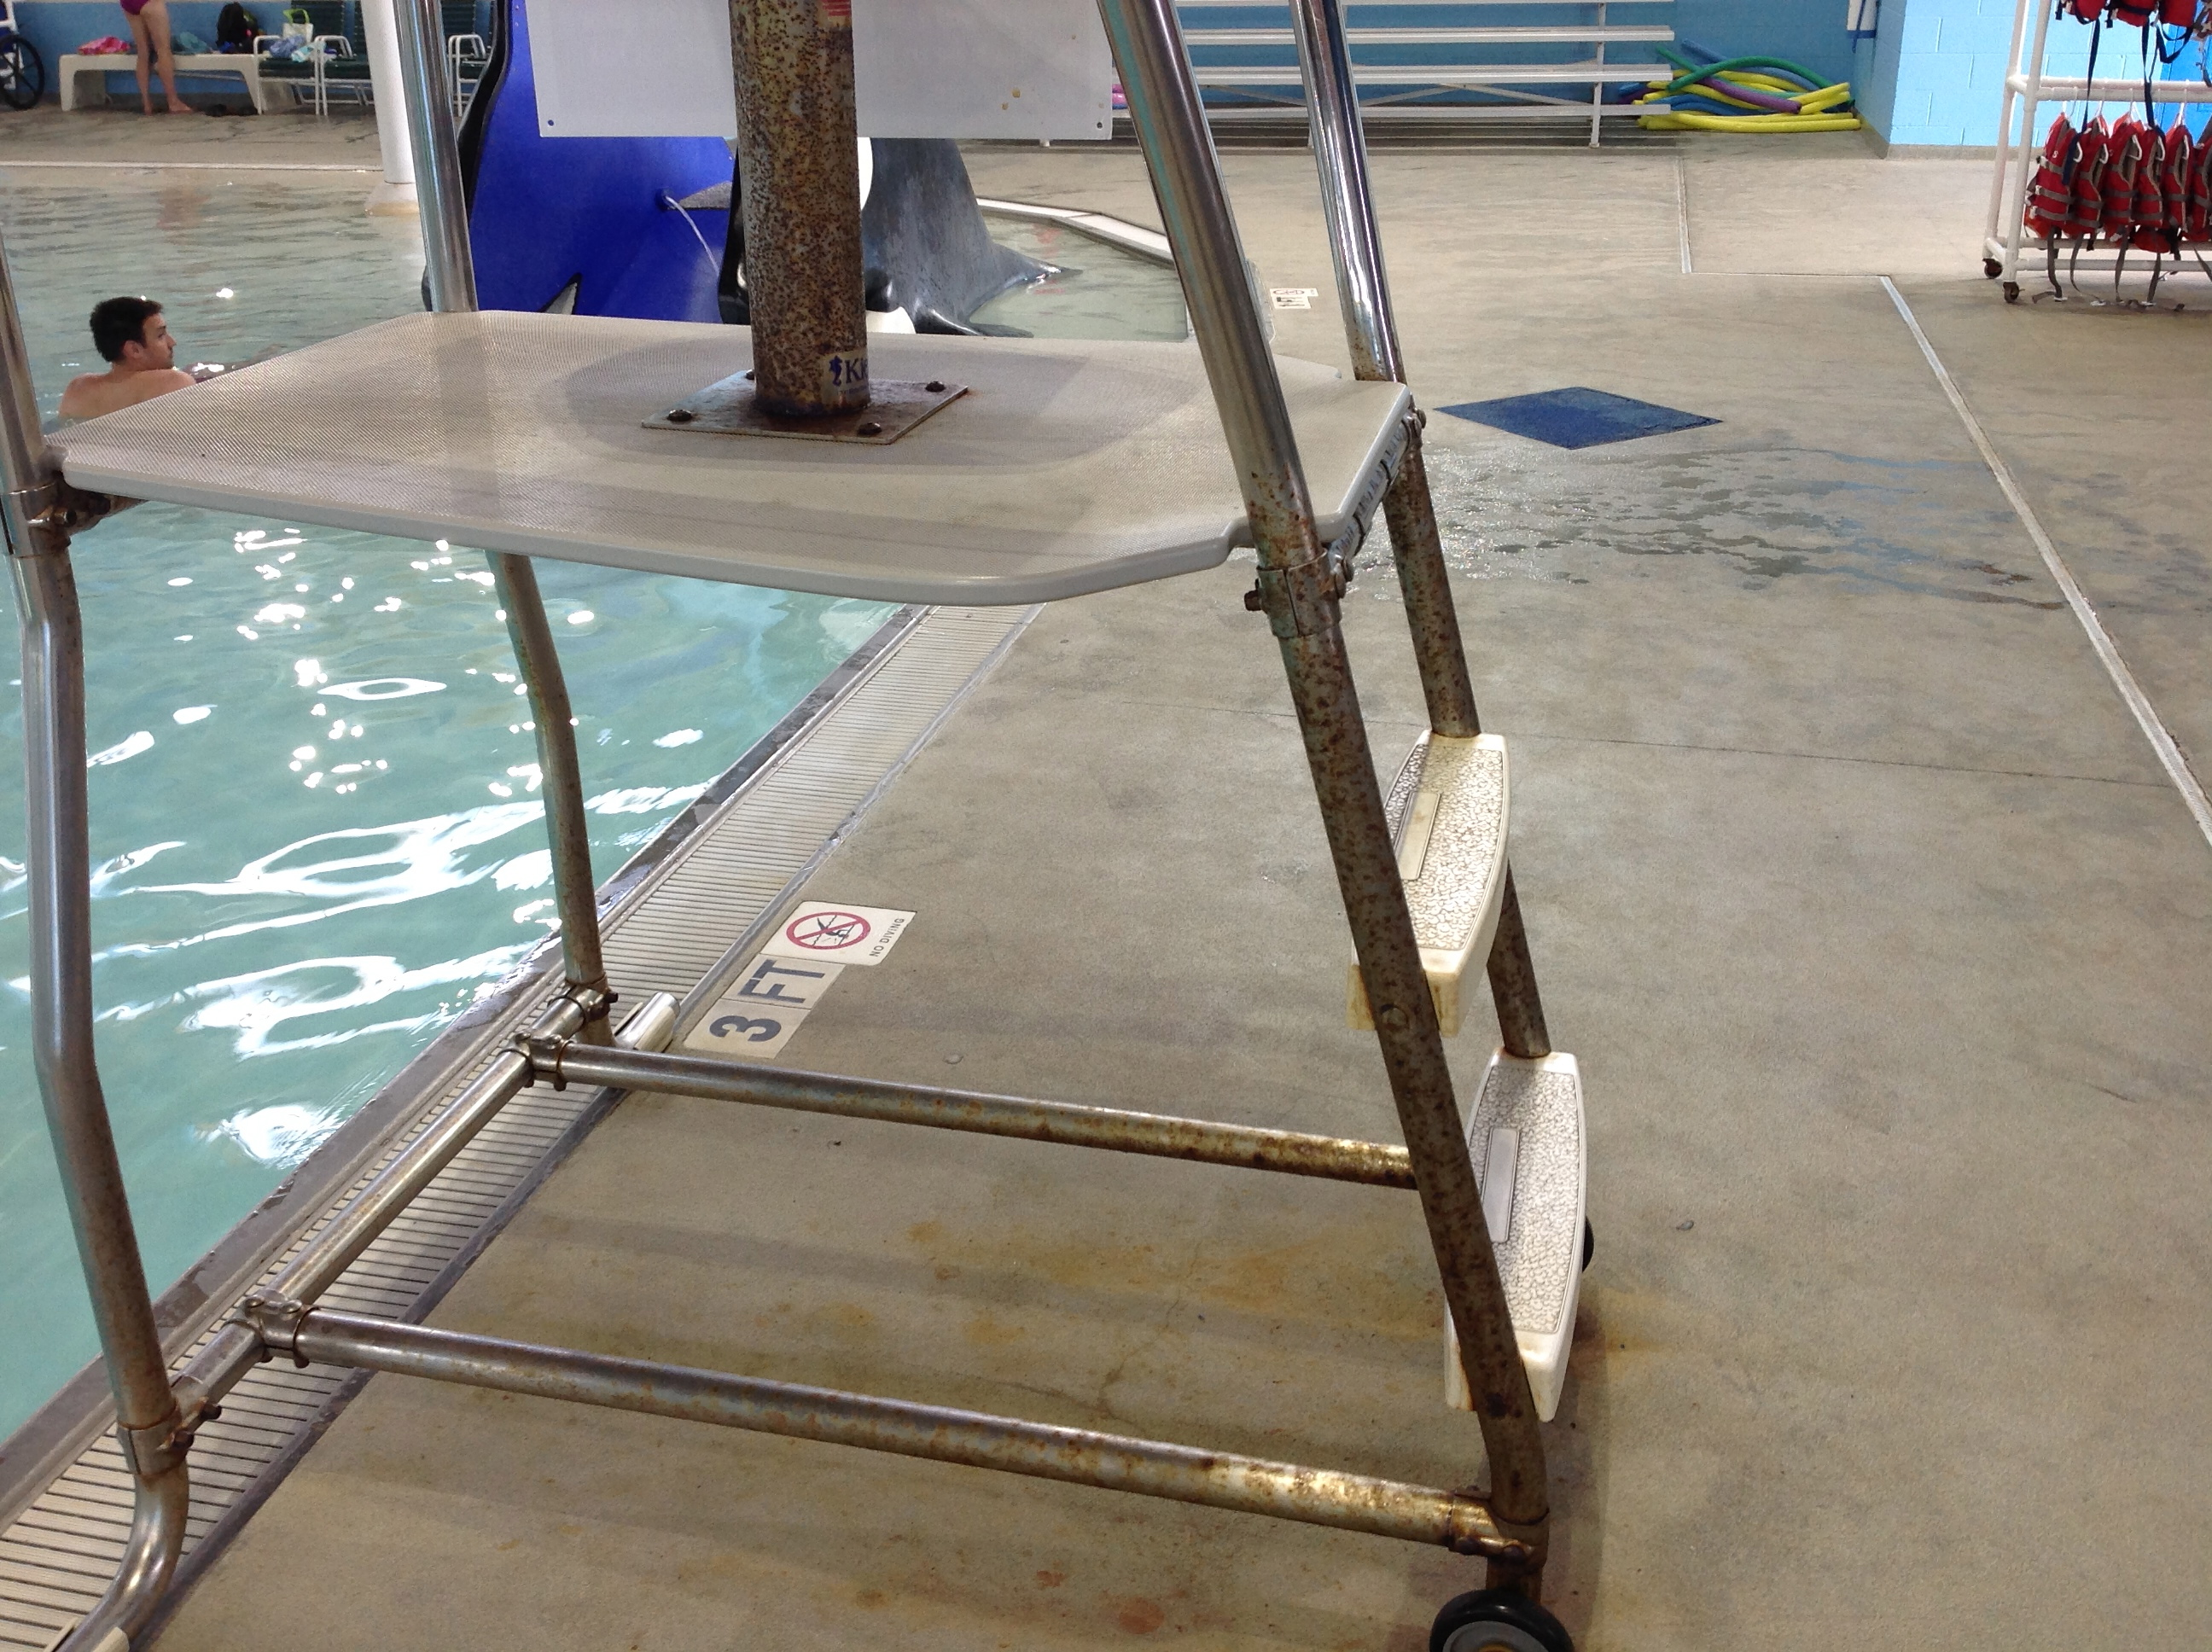 rusty lifeguard stand